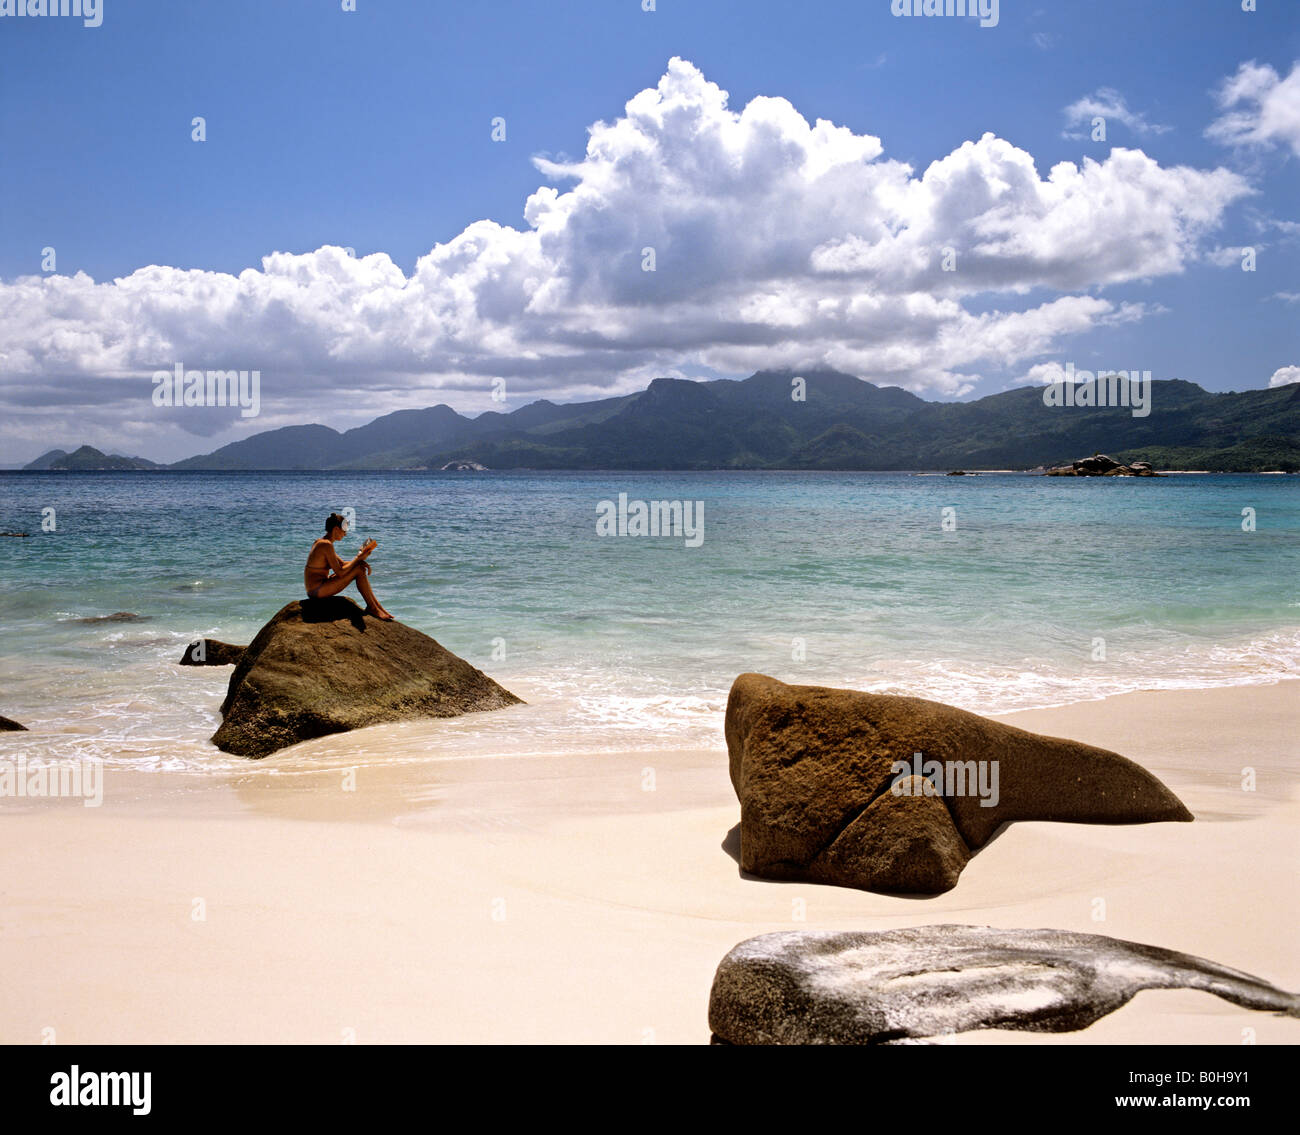 Beach of Mahe, Seychelles, Indian Ocean - Stock Image